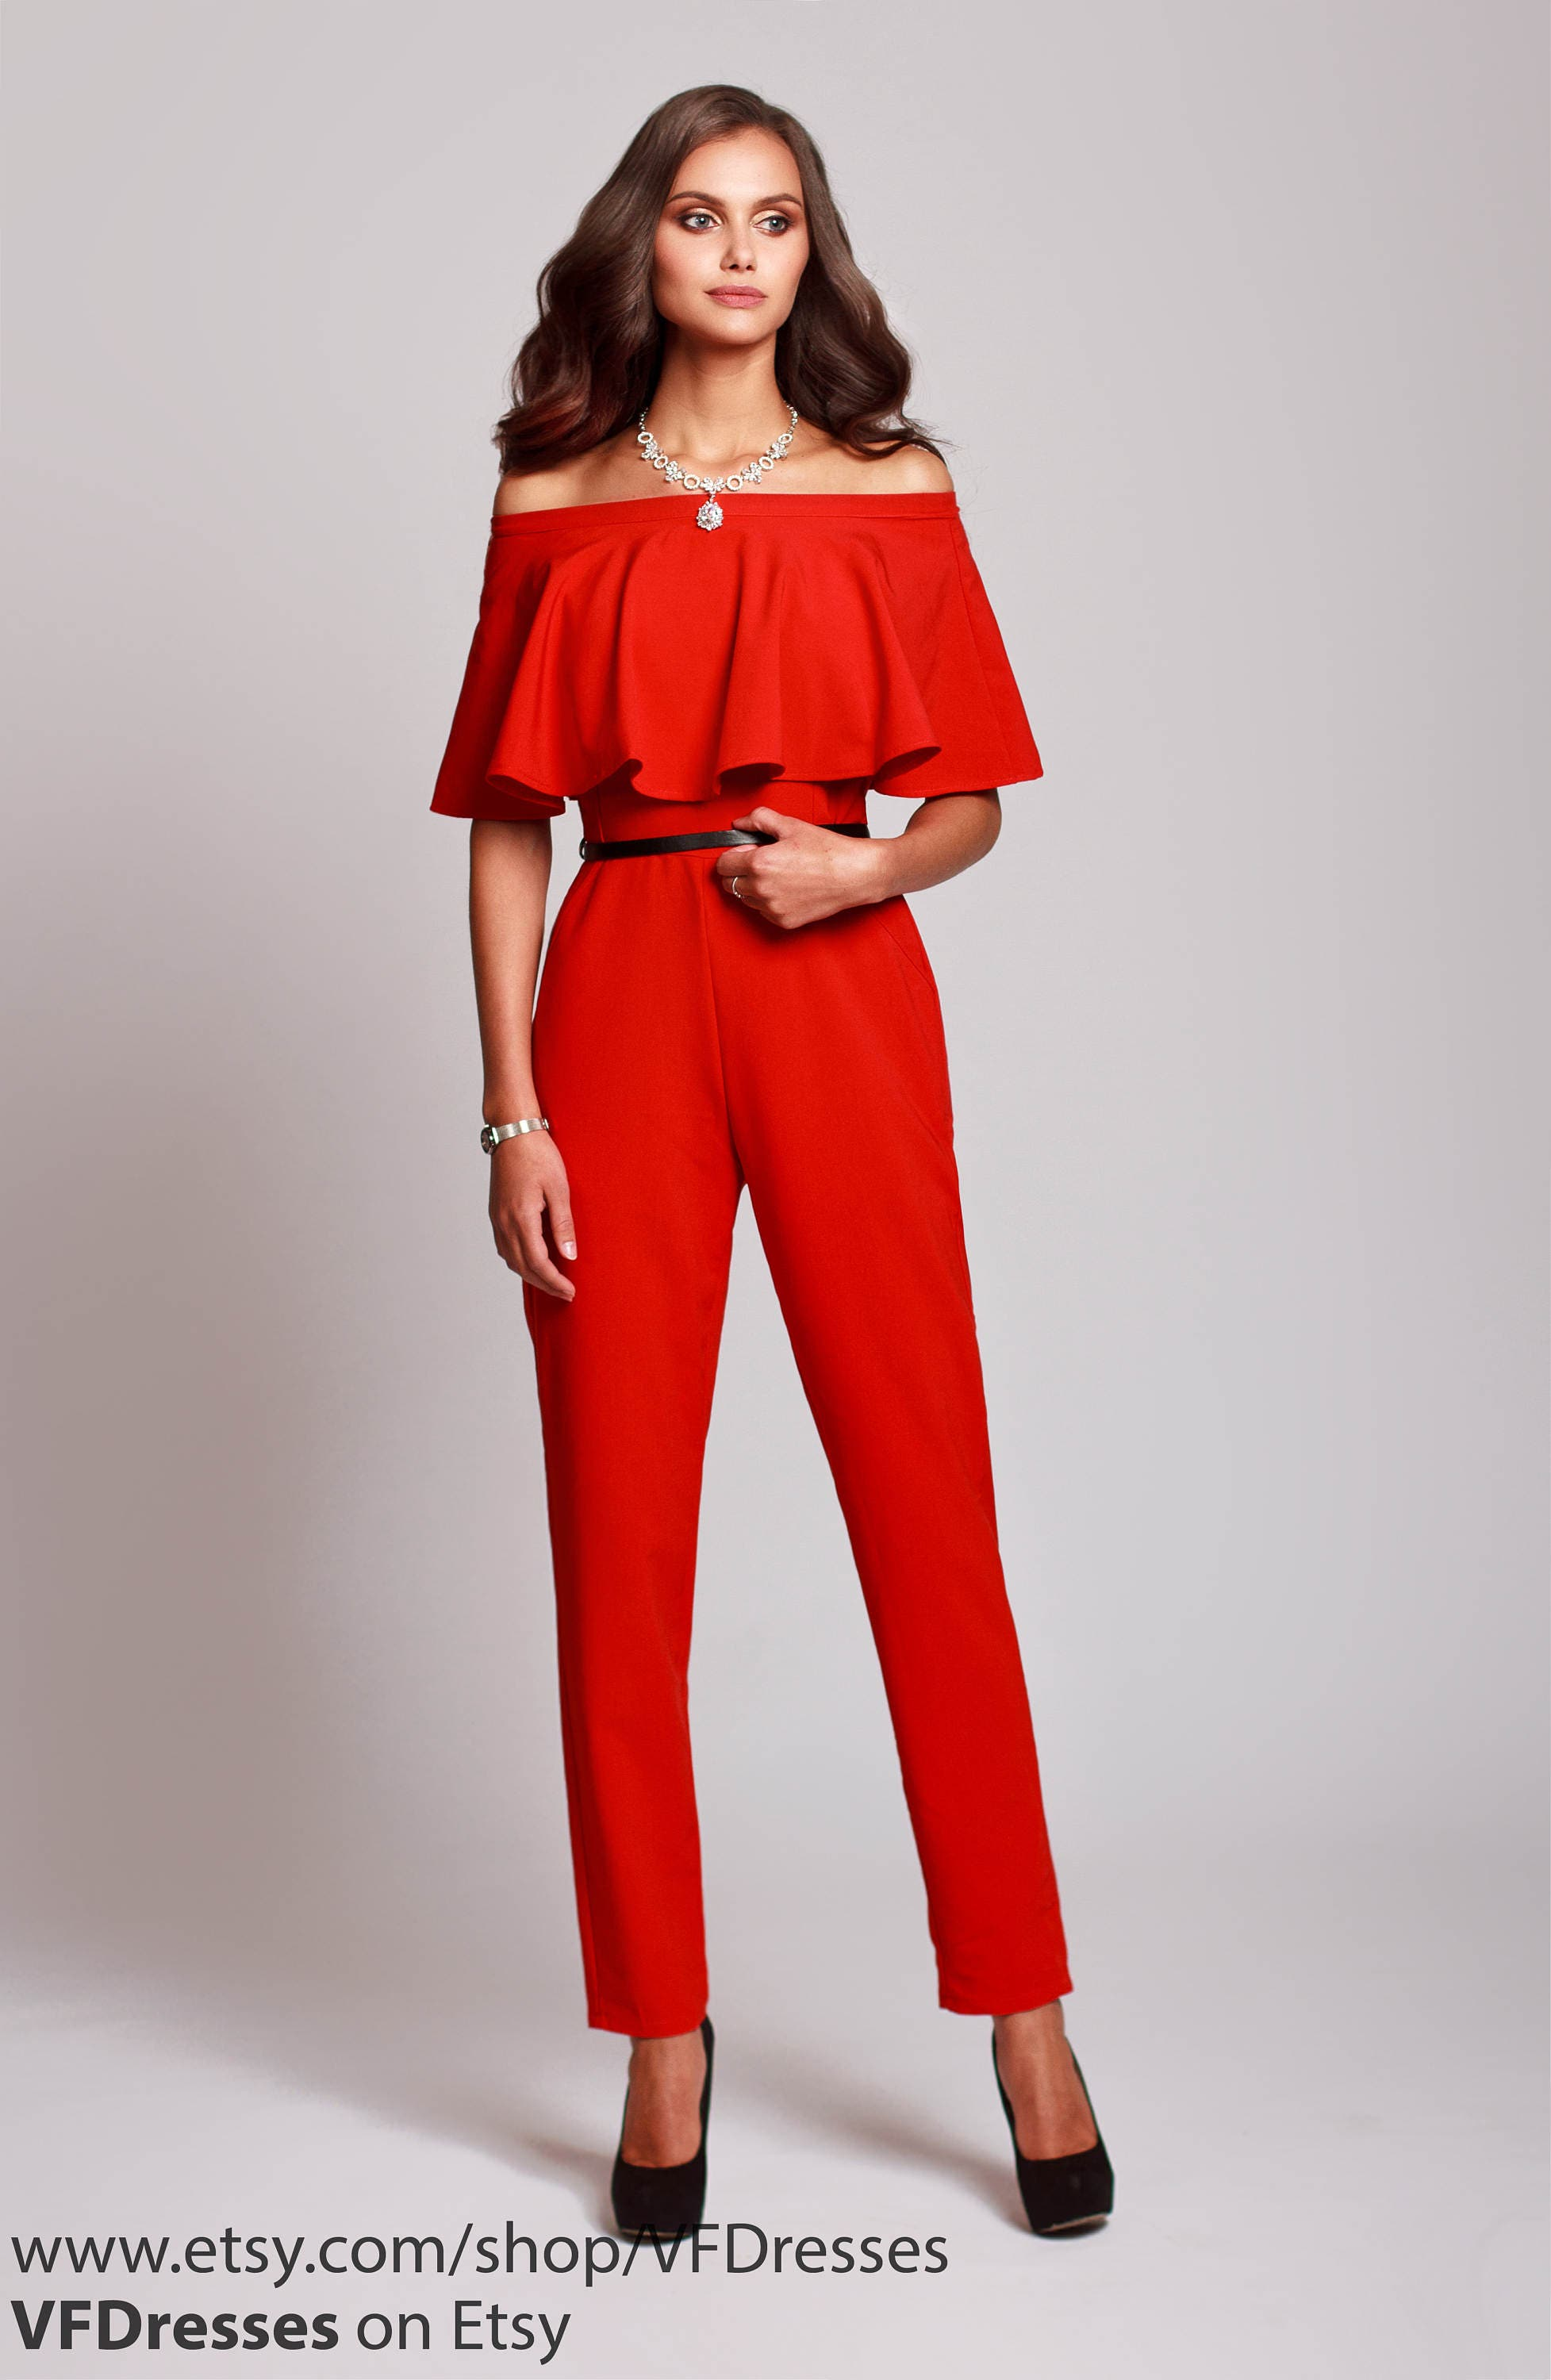 Red jumpsuit womens jumpsuit wedding jumpsuit festive - Jumpsuit hochzeit ...